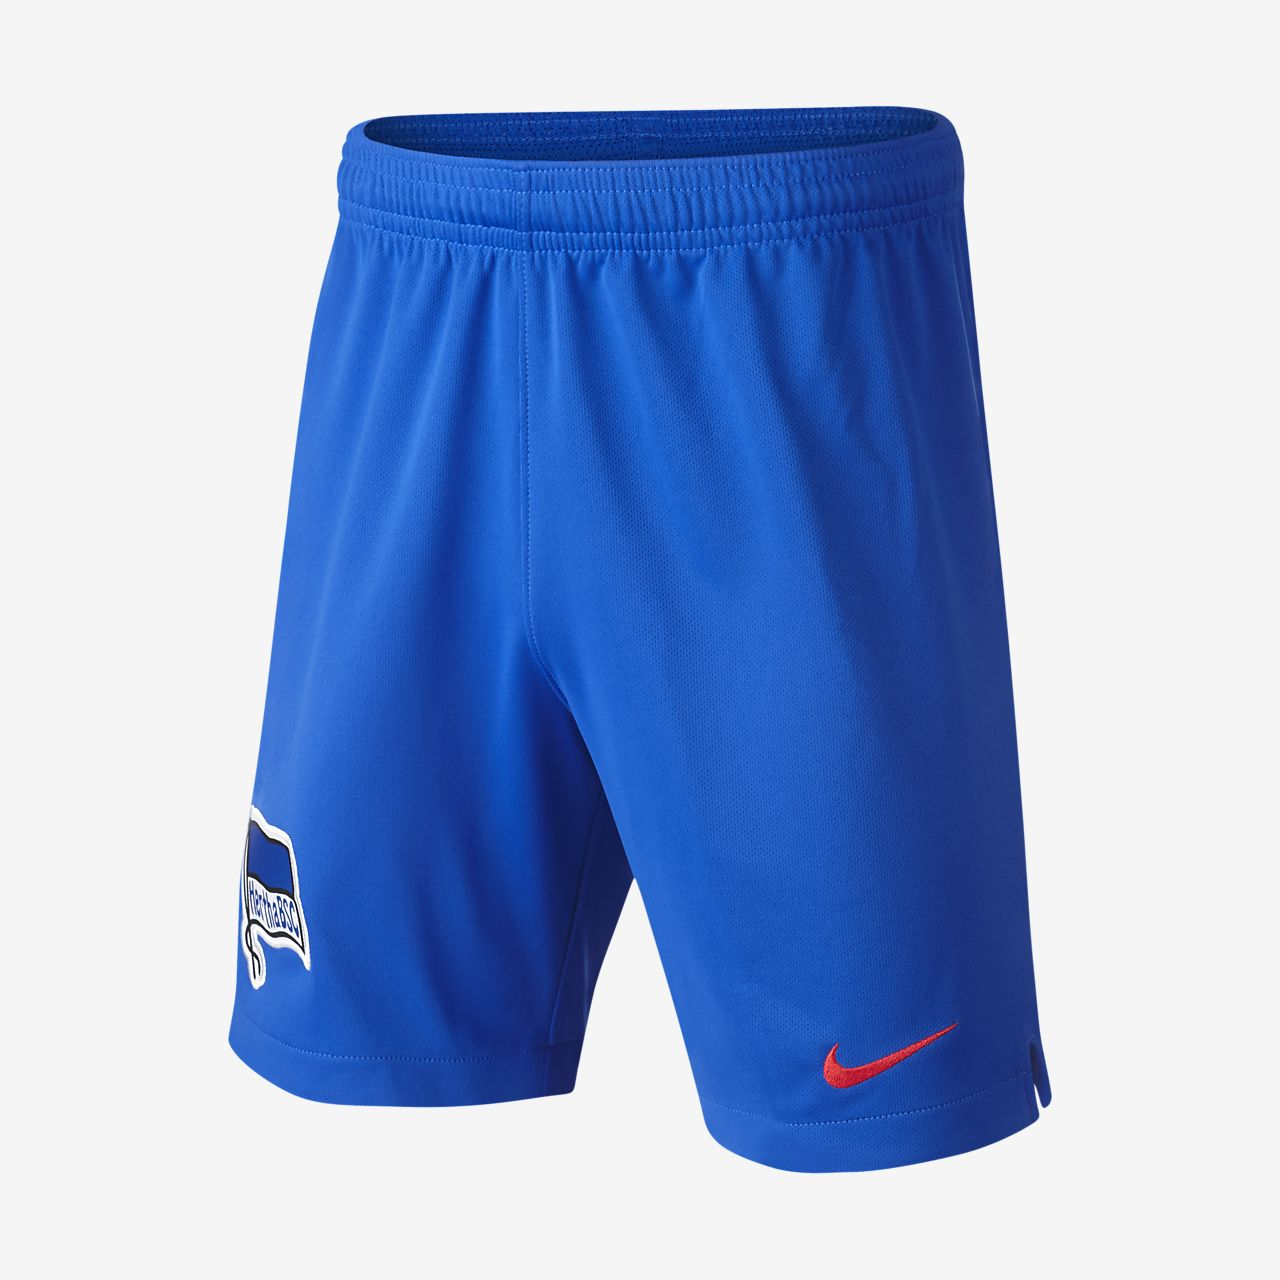 2018/19 Hertha BSC Stadium Home/Away Older Kids' Football Shorts